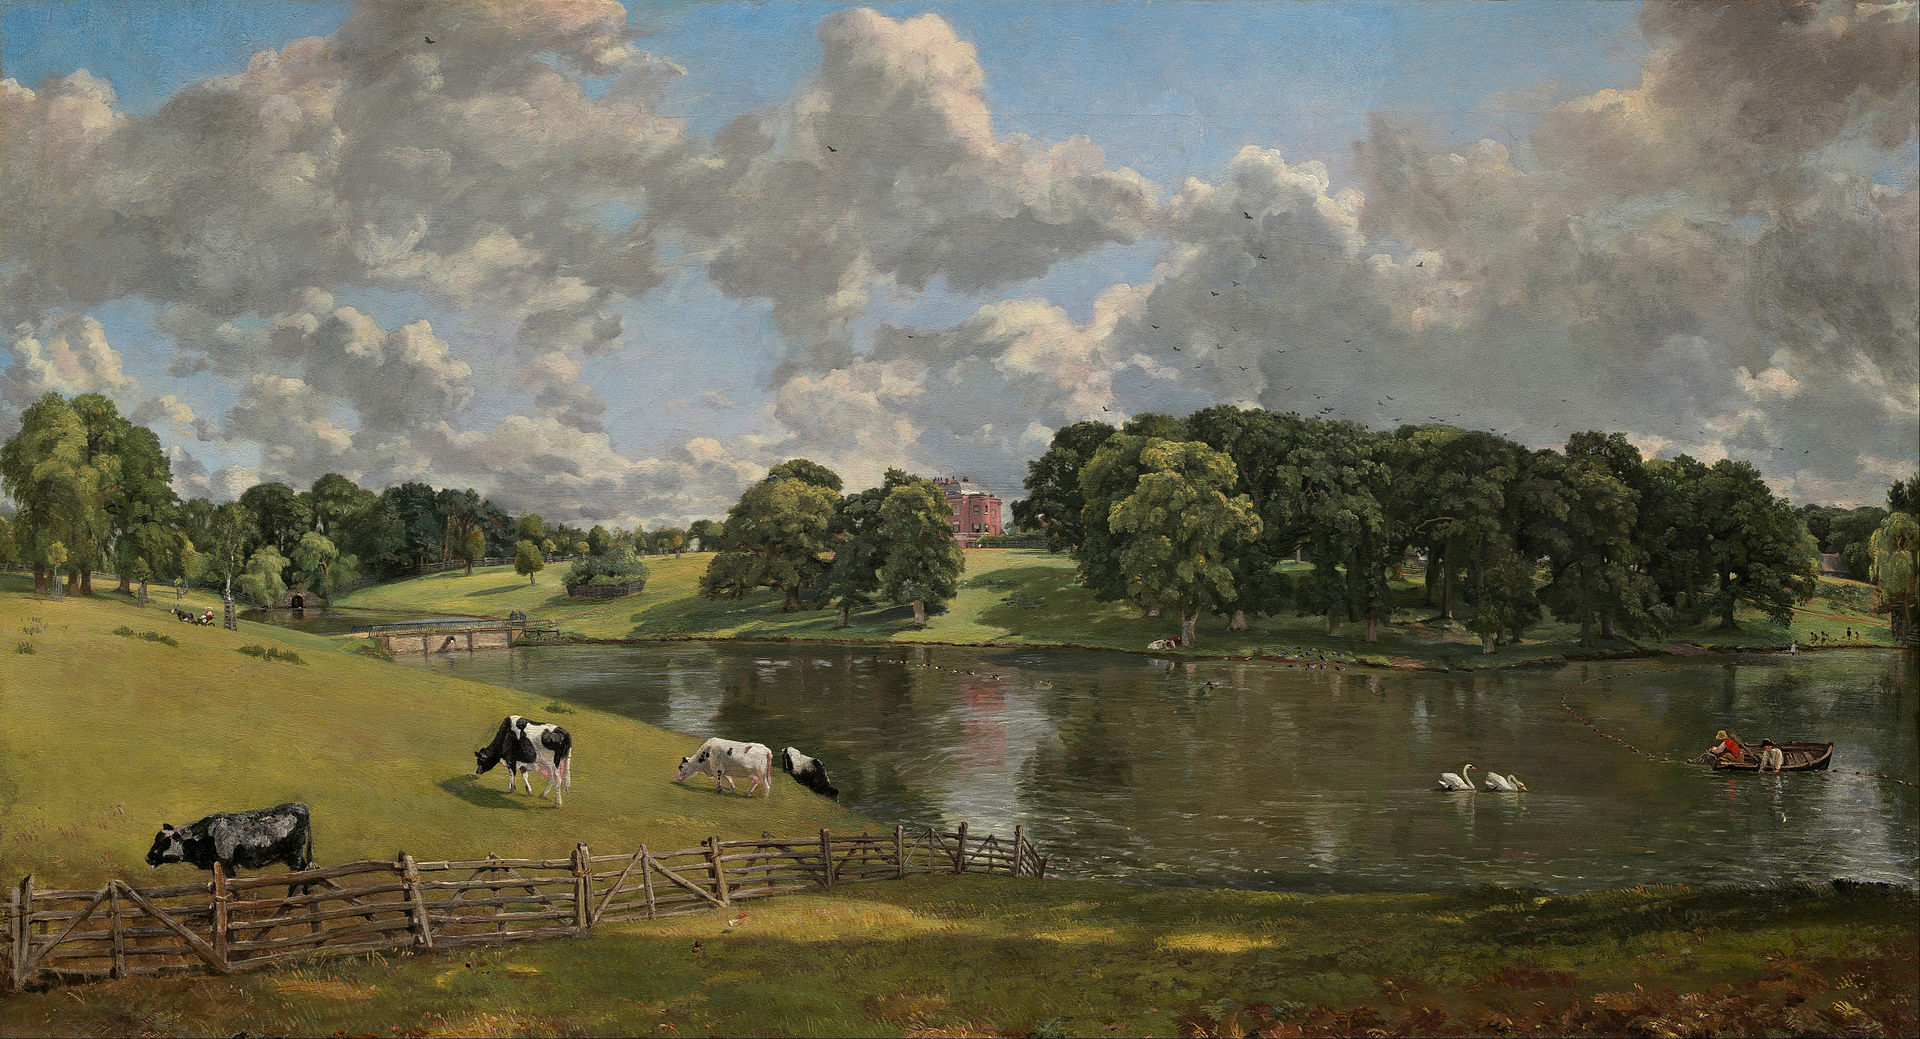 John Constable - Wivenhoe Park, Essex - Google Art Project, Public Domain, https://commons.wikimedia.org/w/index.php?curid=21996910